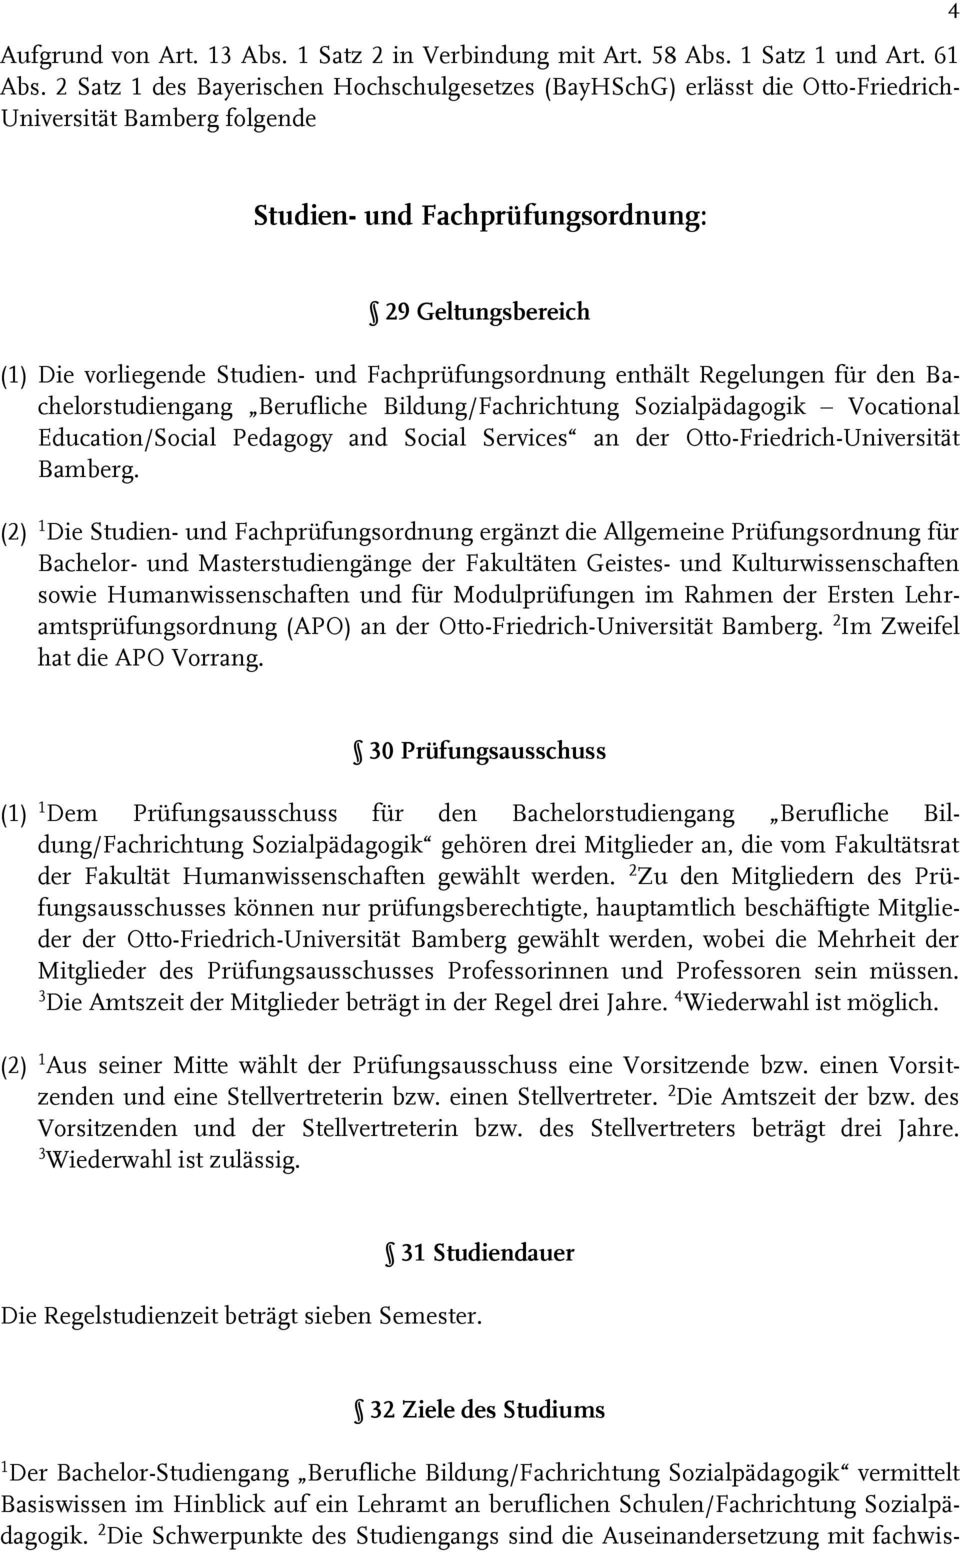 Fachprüfungsordnung enthält Regelungen für den Bachelorstudiengang Berufliche Bildung/Fachrichtung Sozialpädagogik Vocational Education/Social Pedagogy and Social Services an der